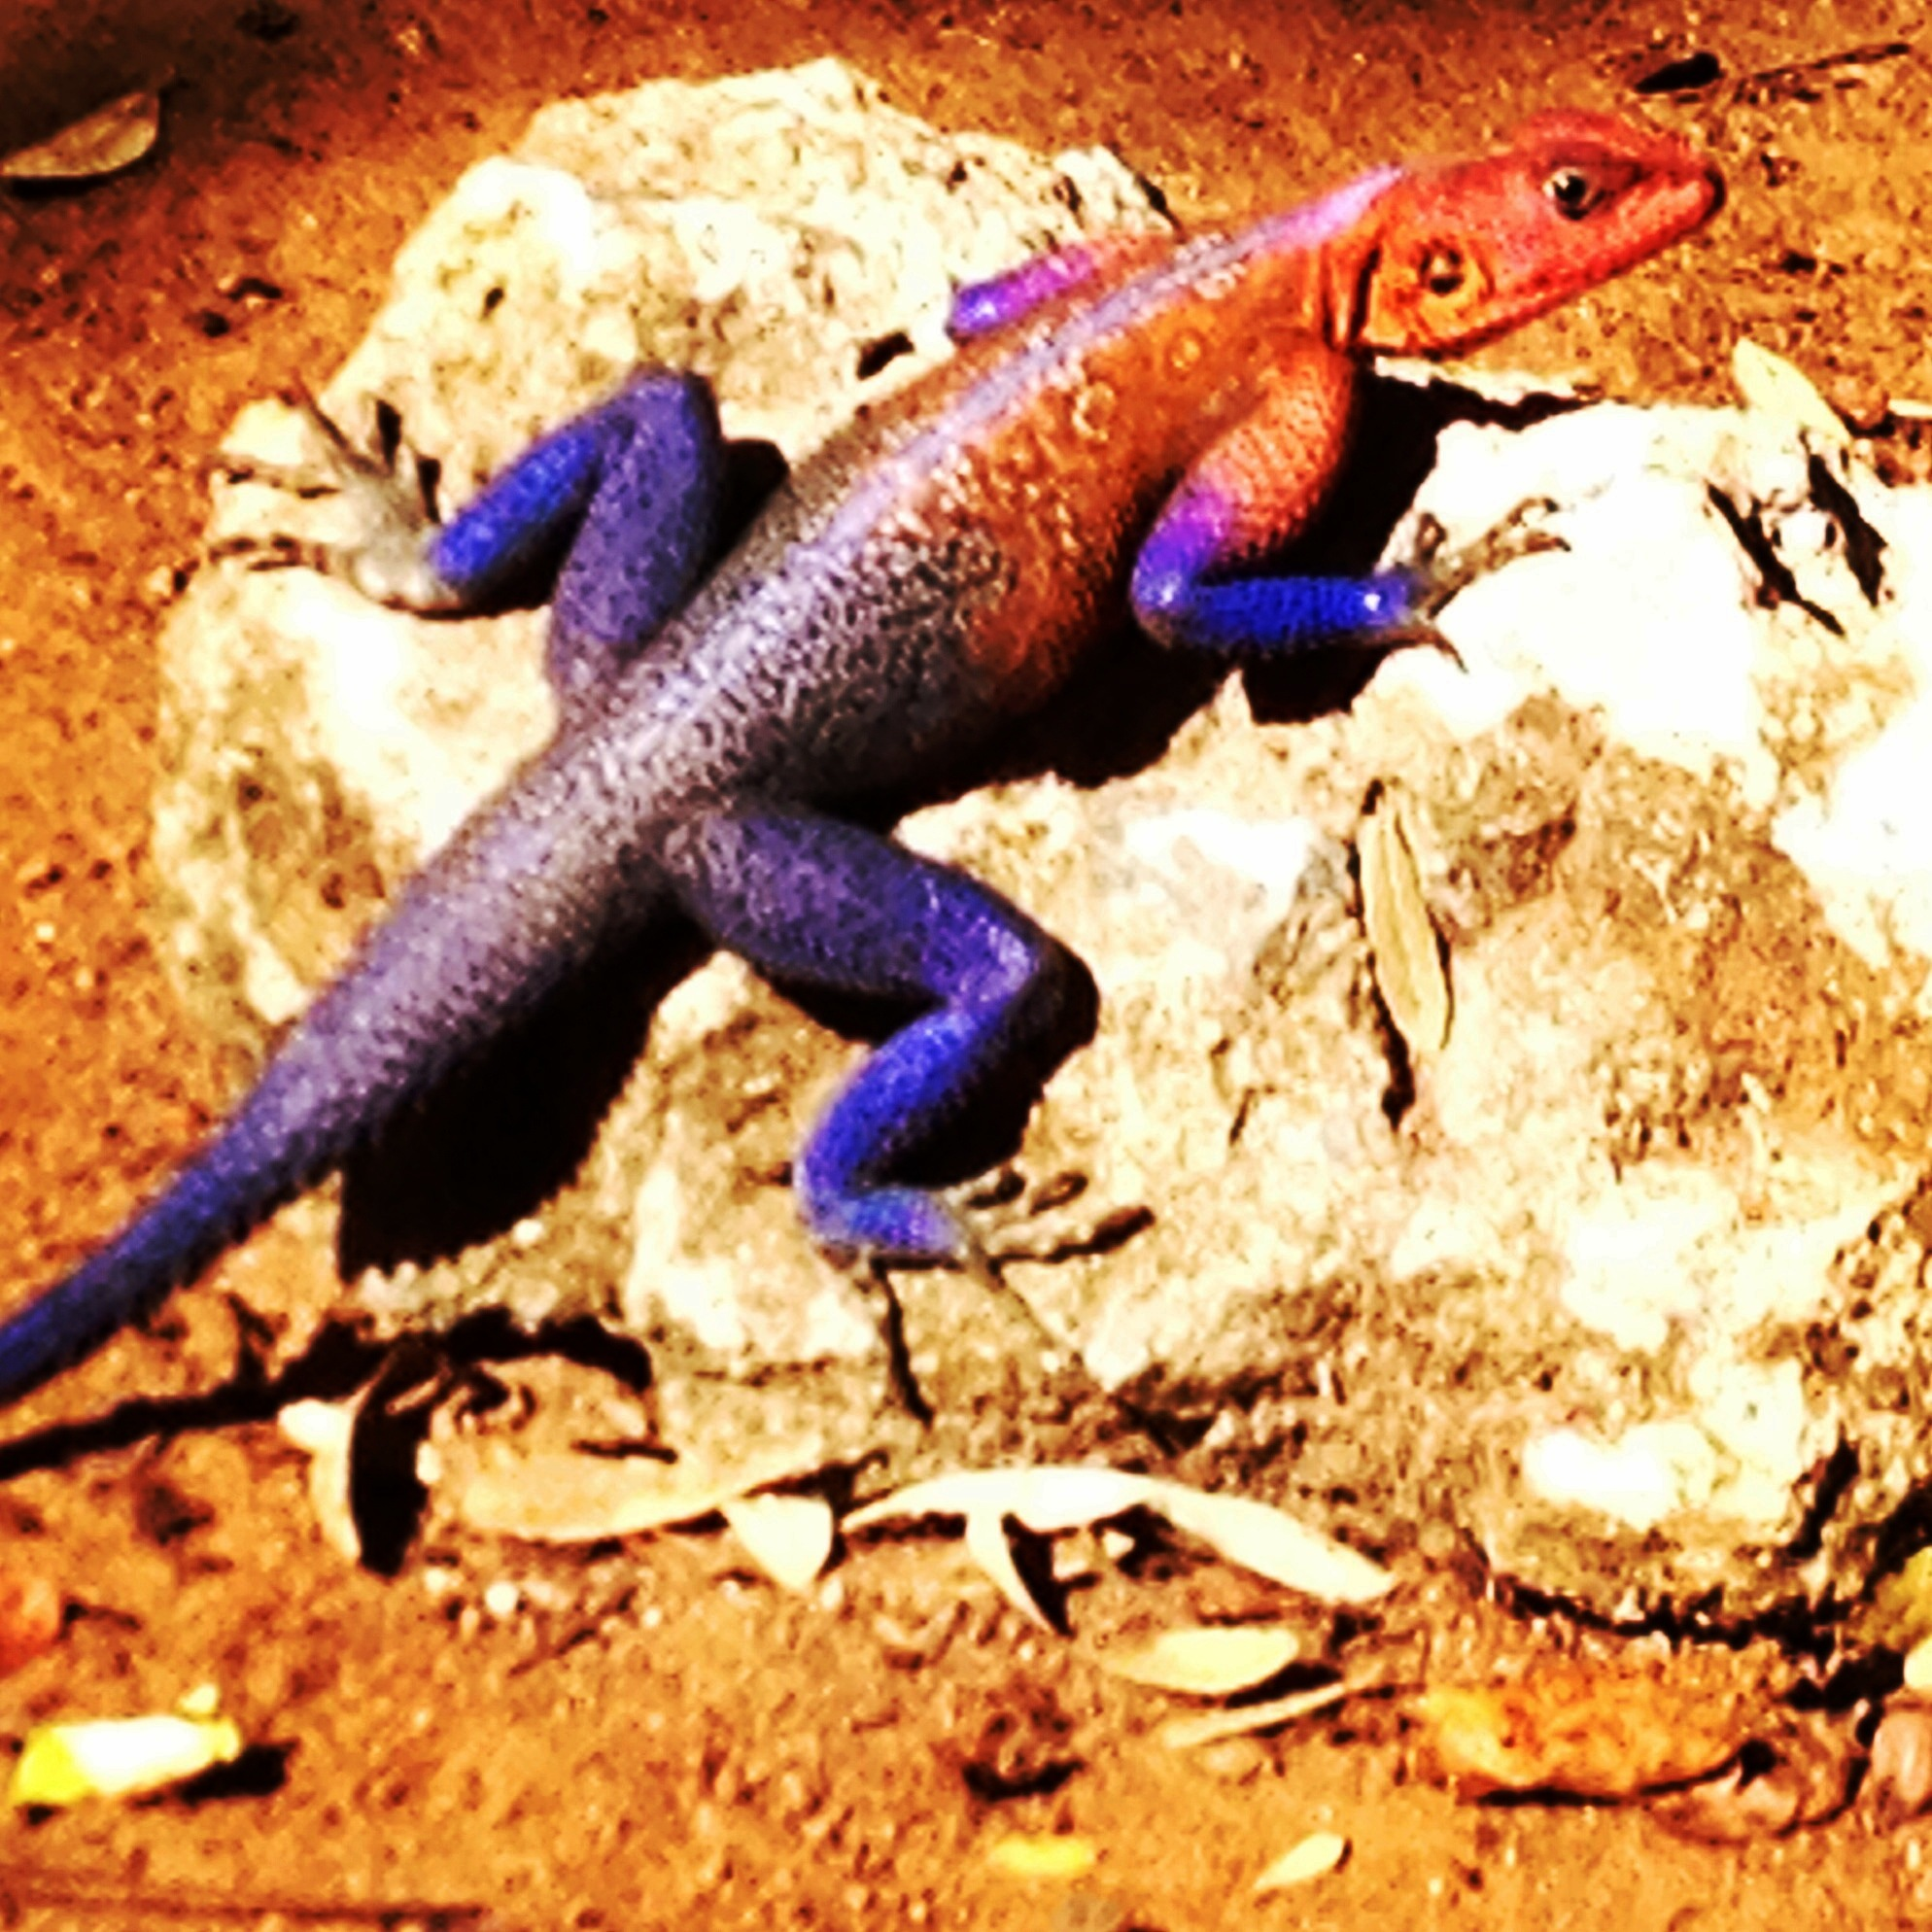 Mwanza Flat Headed Rock Agama - AKA the Spiderman Lizard in Mwanza, Tanzania.